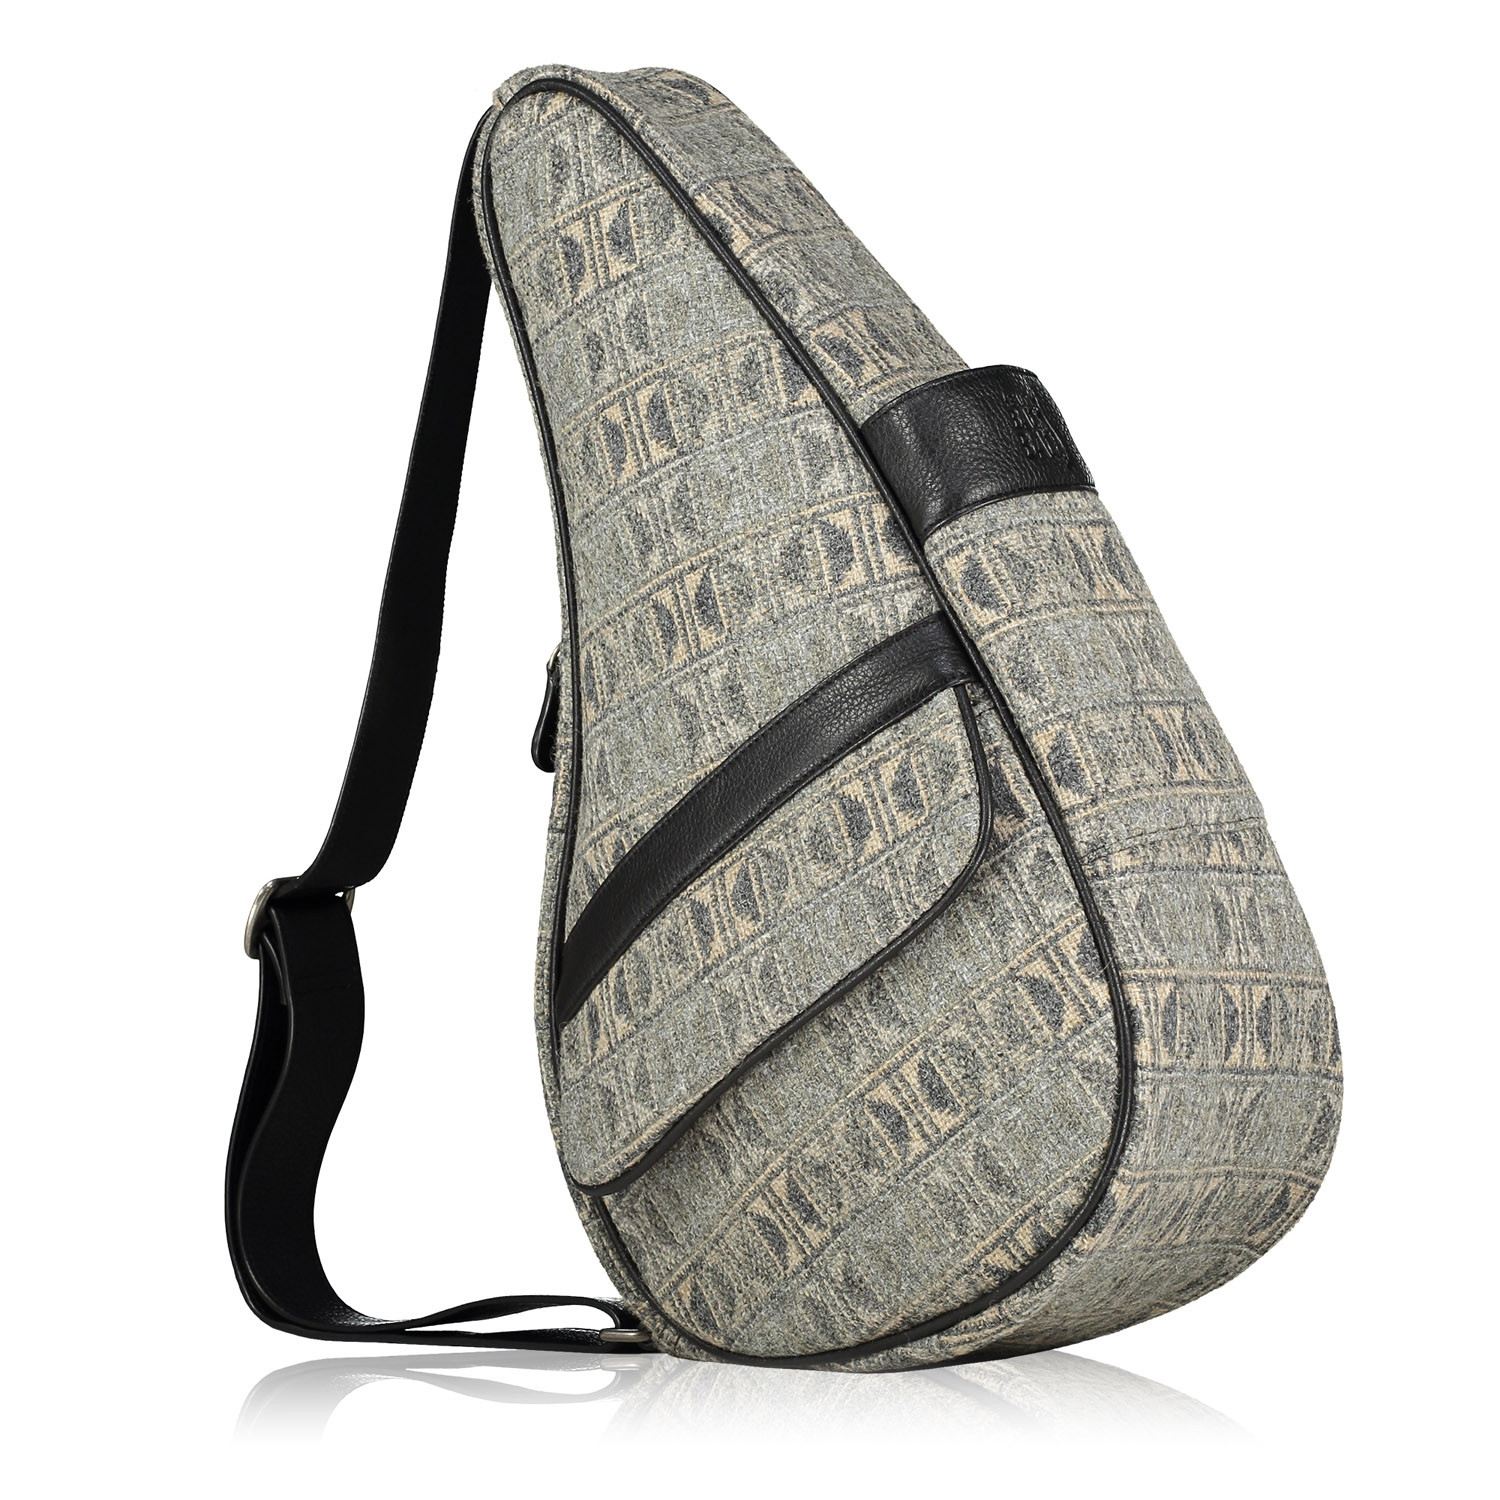 Elements stone Healthy back bag